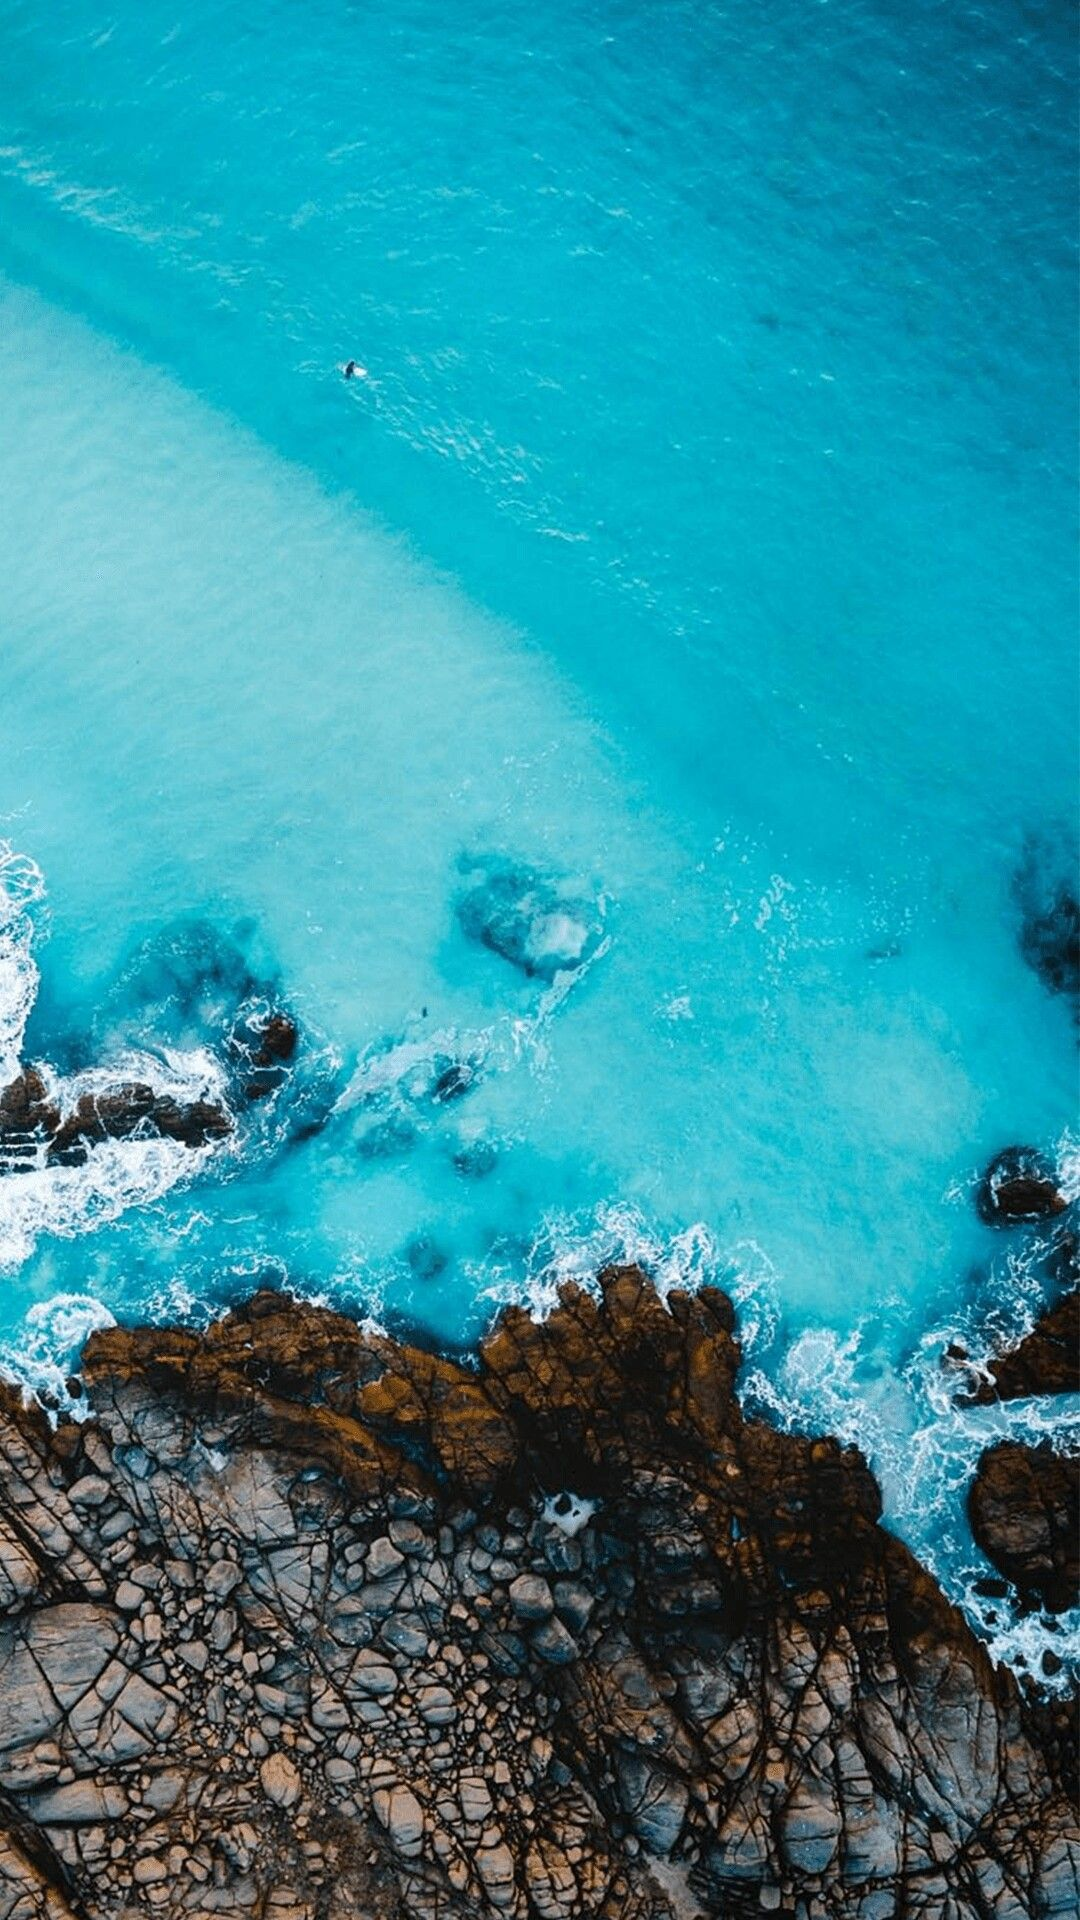 Pin By Syrius On Phone Background Wallpaper Iphone Christmas Christmas Wallpaper Backgrounds Holiday Iphone Wallpaper Wallpaper coast aerial view sea boat